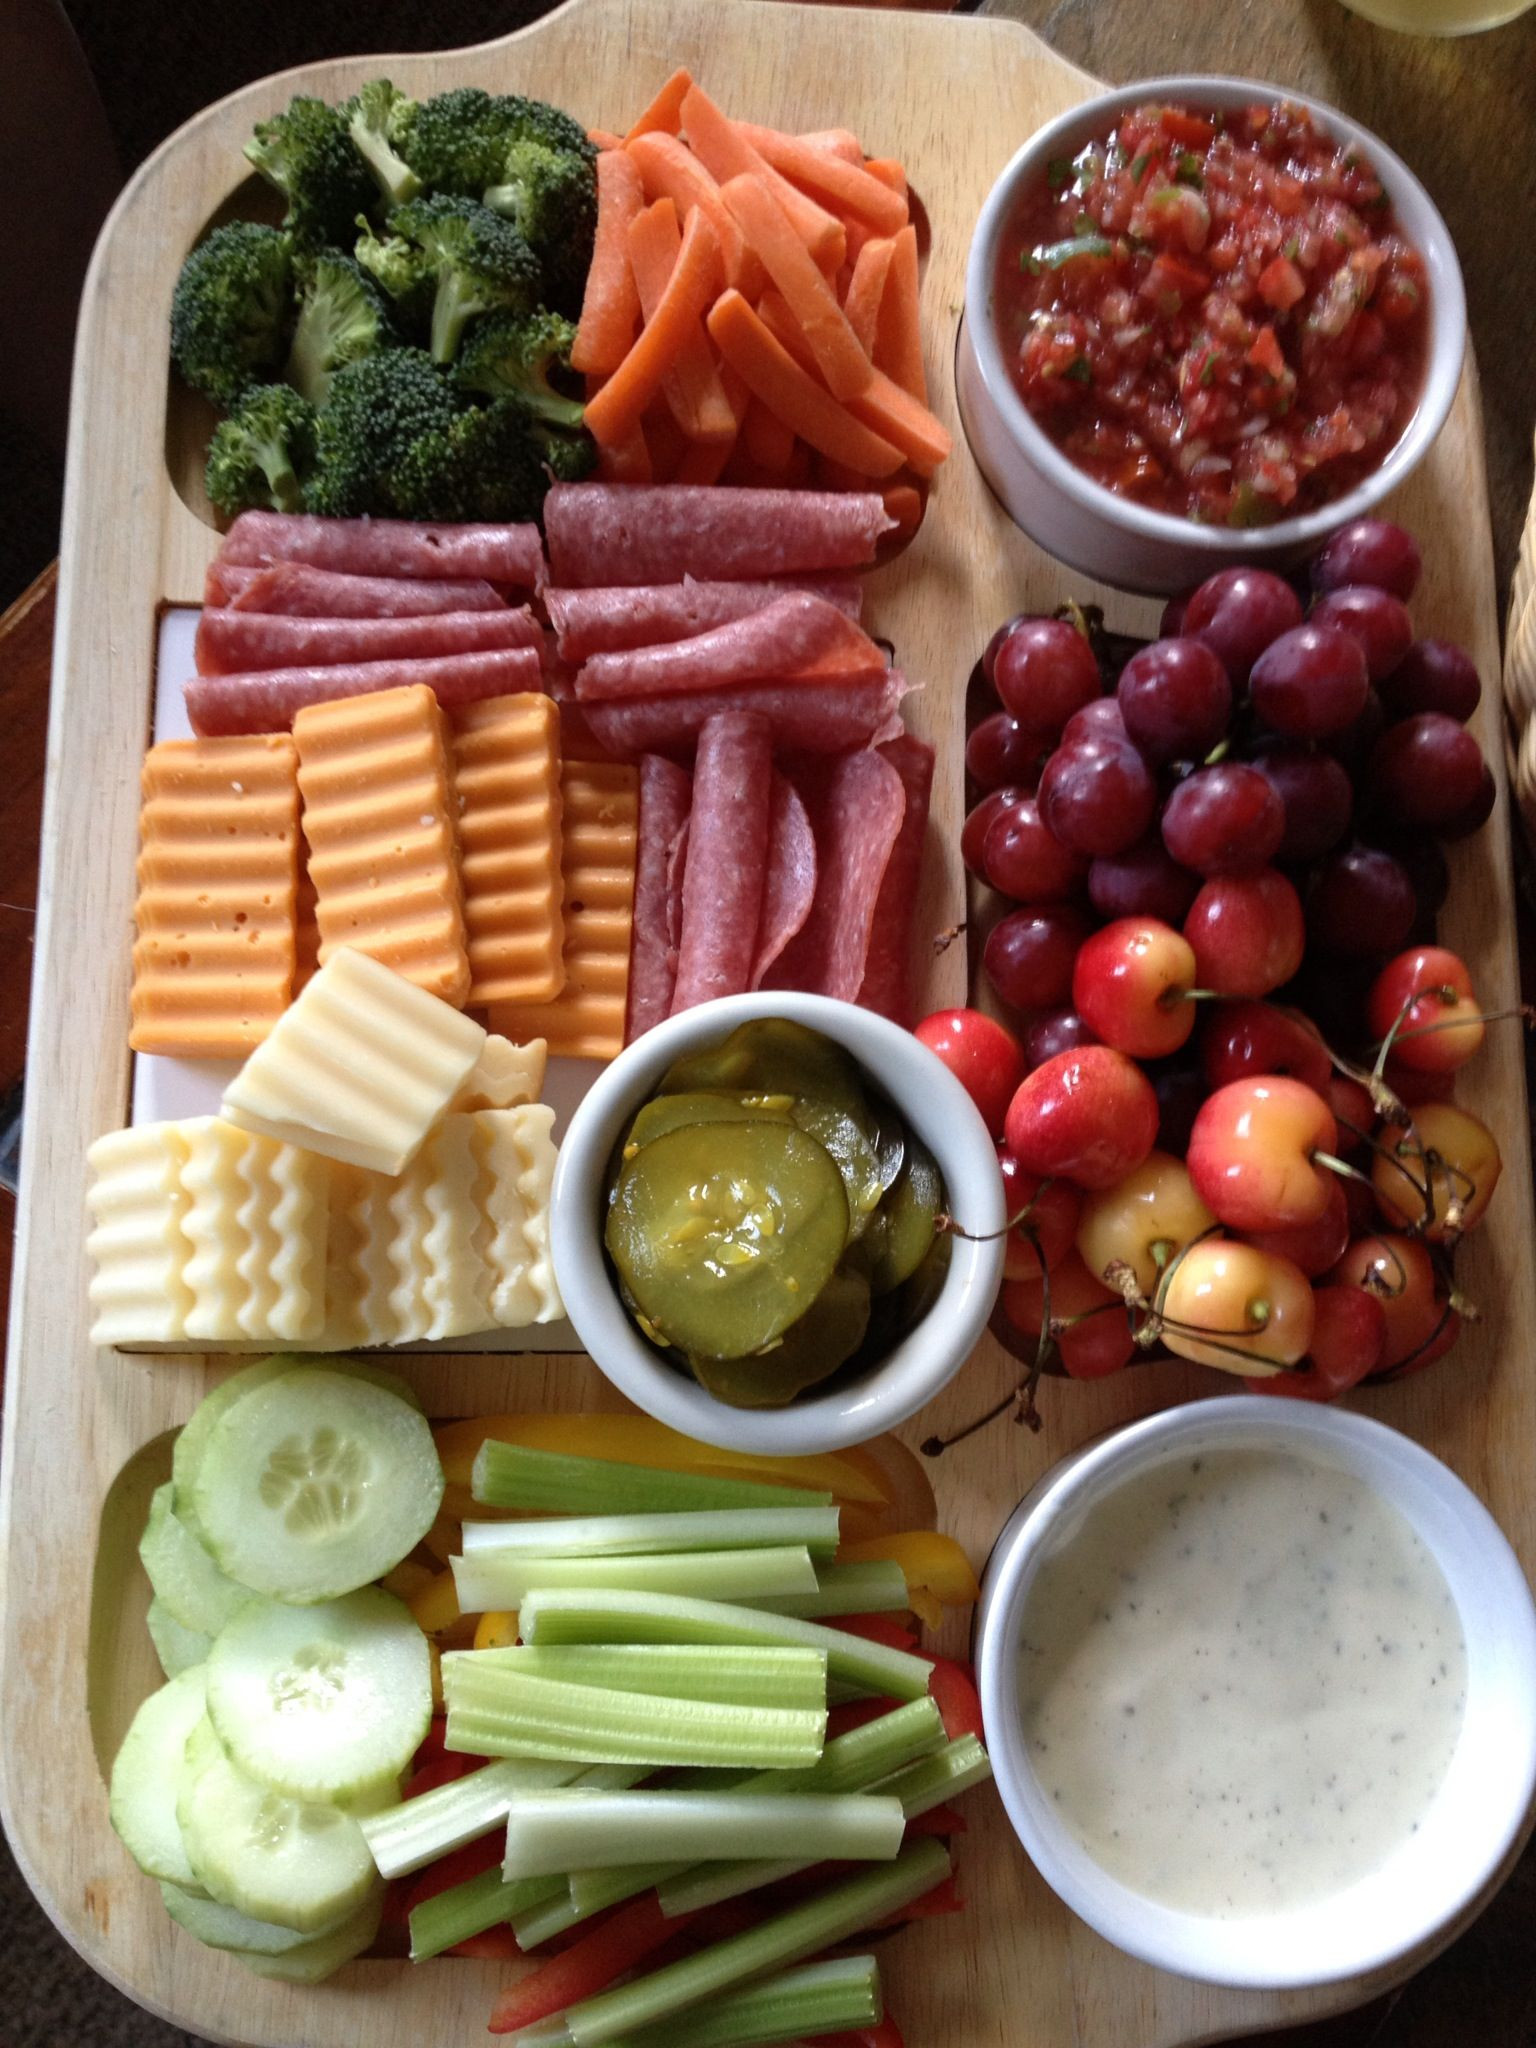 Healthy Snacks To Take To The Movies  At home movie snacks with a glass of wine